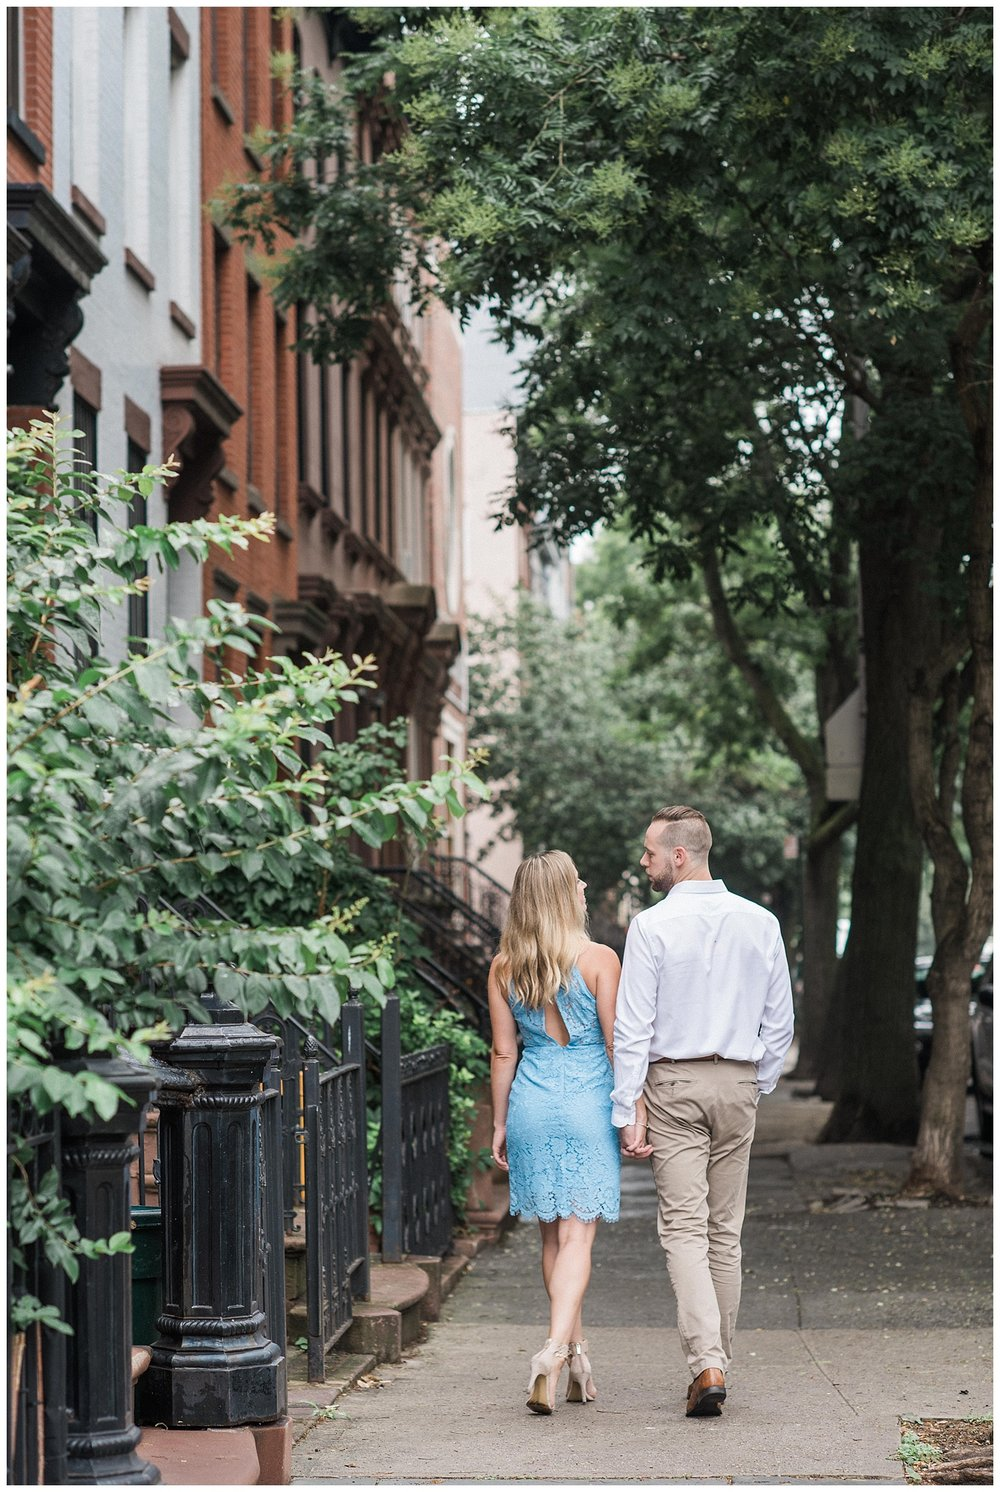 Brooklyn Engagement Session | NYC Weddings | Manhattan | www.redoakweddings.com